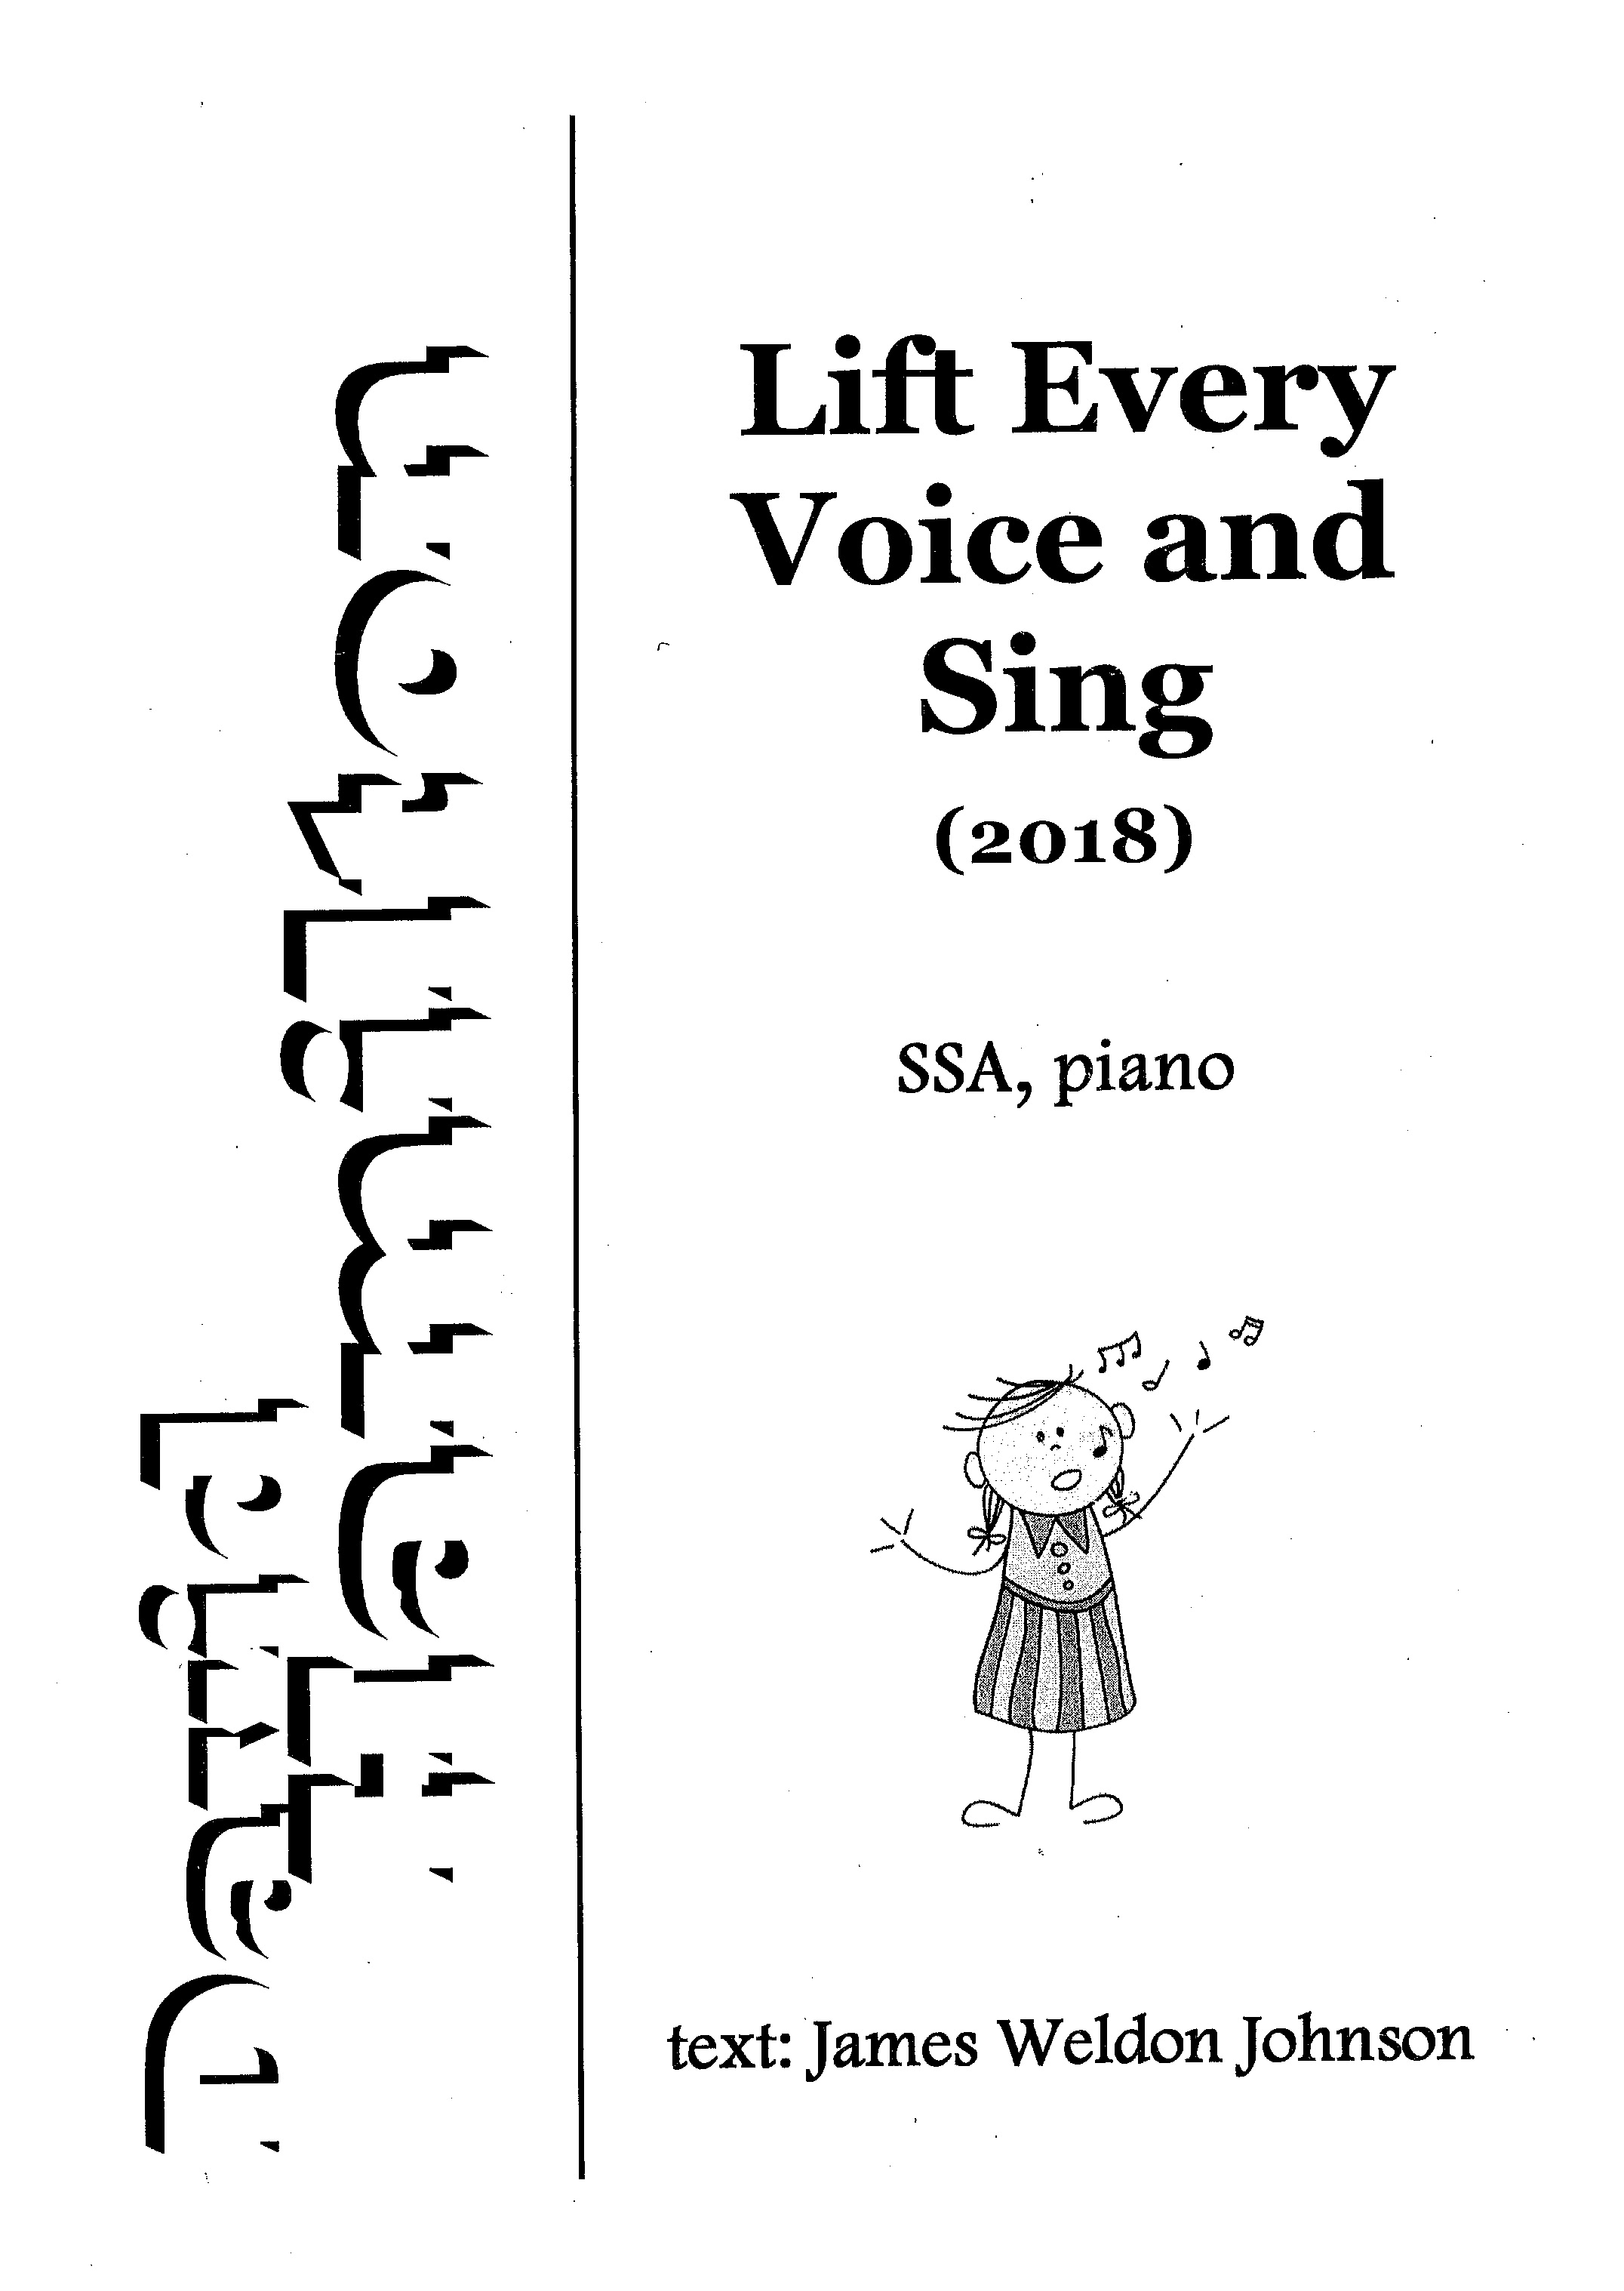 David Hamilton: Lift Every Voice and Sing - hardcopy SCORE